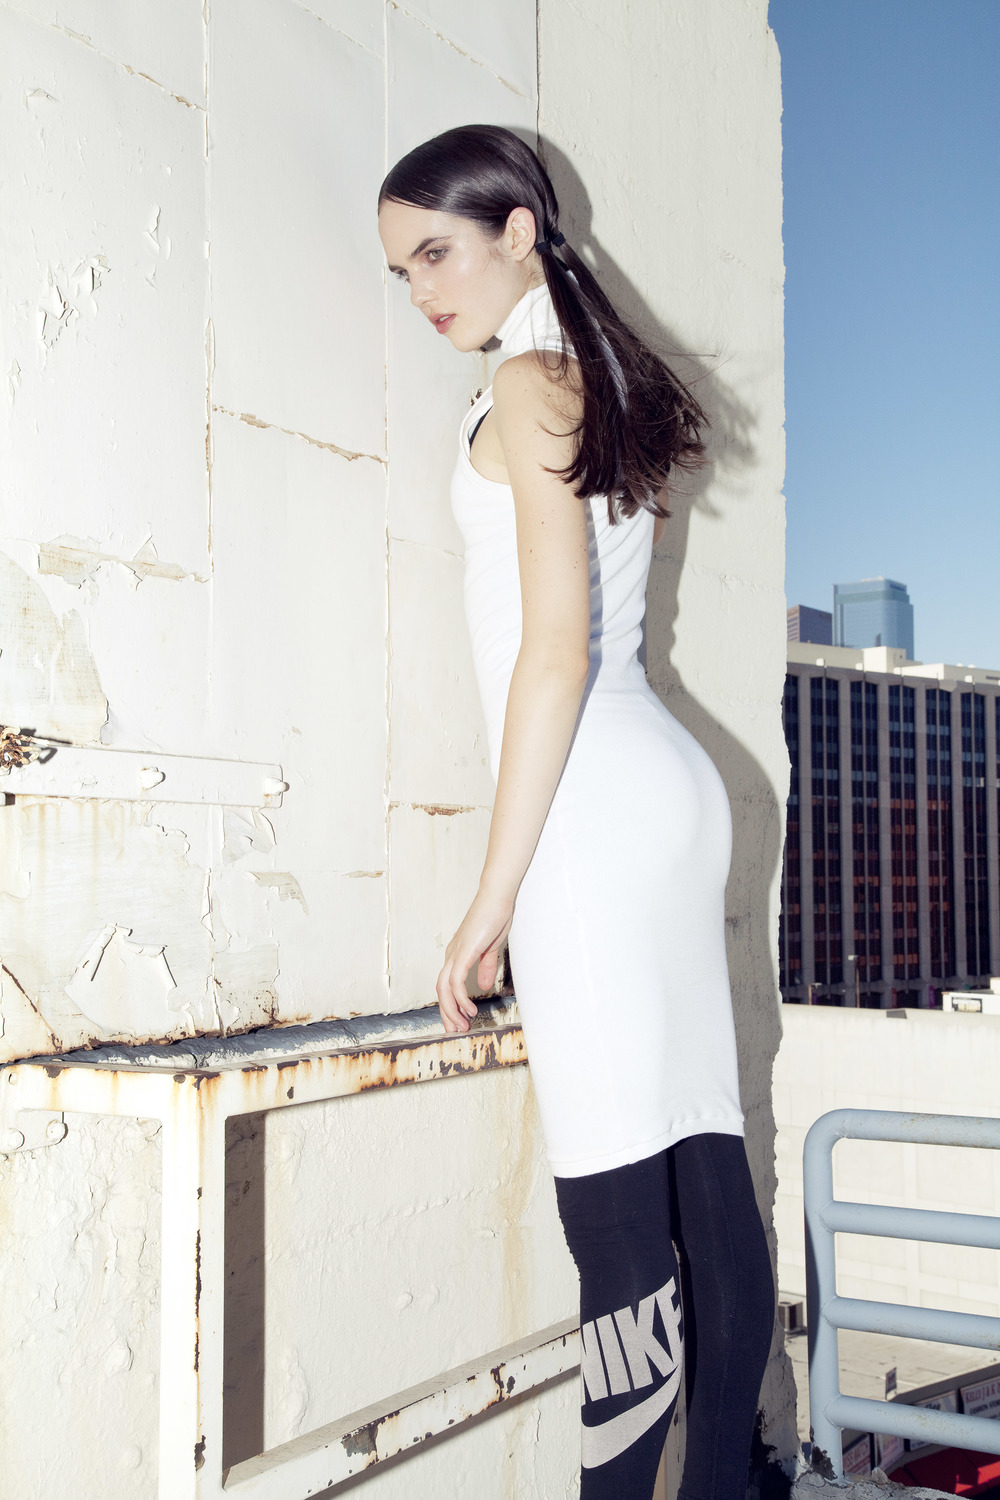 BRAZEN for Ladygunn Mag by Di Henri & styled by Keyla Marquez  (MOCK NECK RIB DRESS)